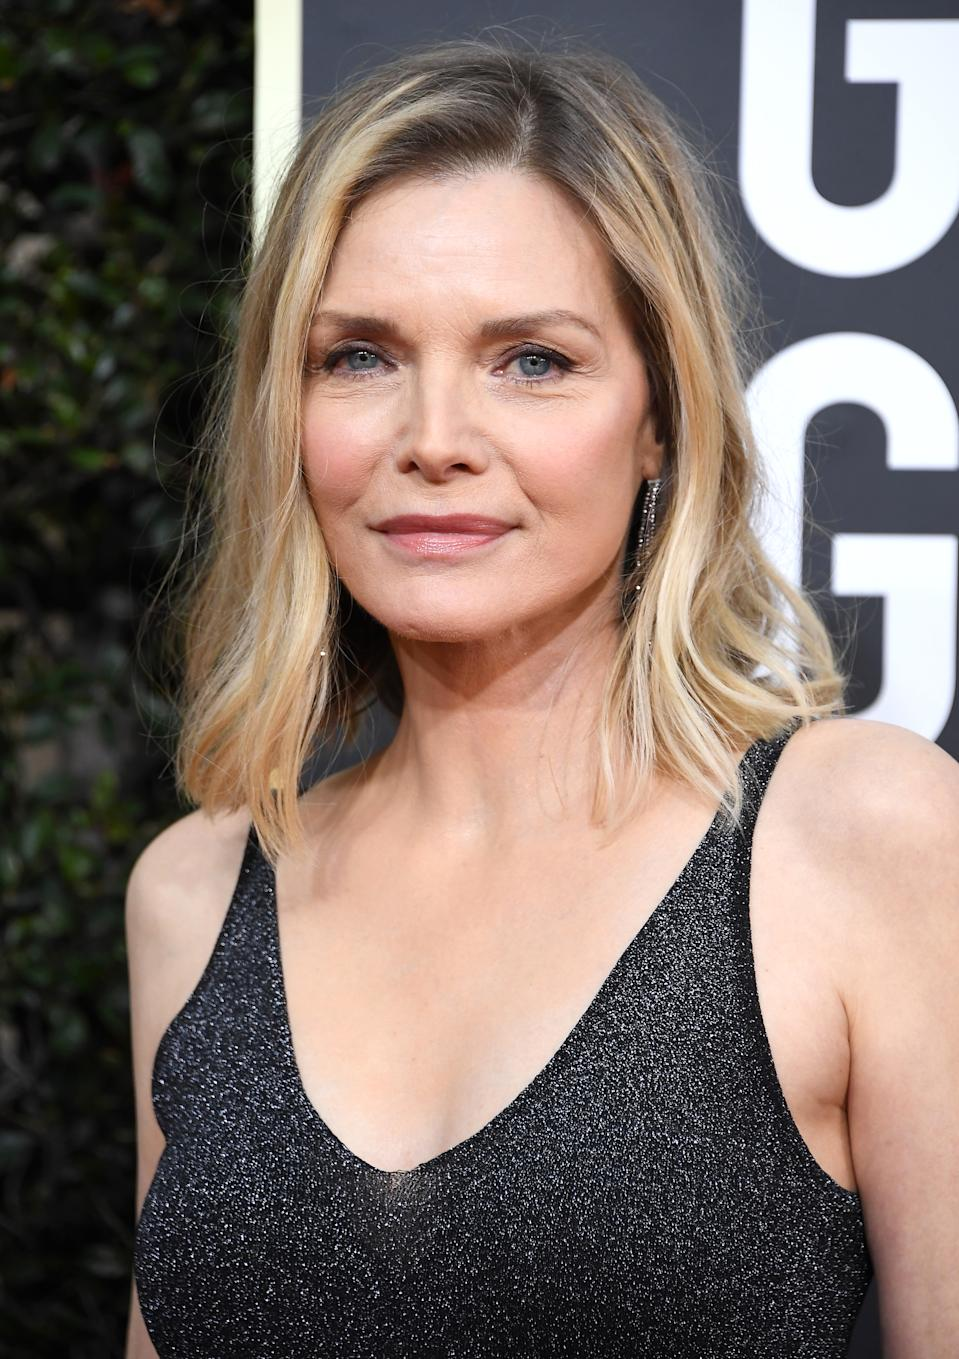 Michelle Pfeiffer wears a black strappy dress at the 77th Annual Golden Globe Awards at The Beverly Hilton Hotel on January 05, 2020 in Beverly Hills, California.